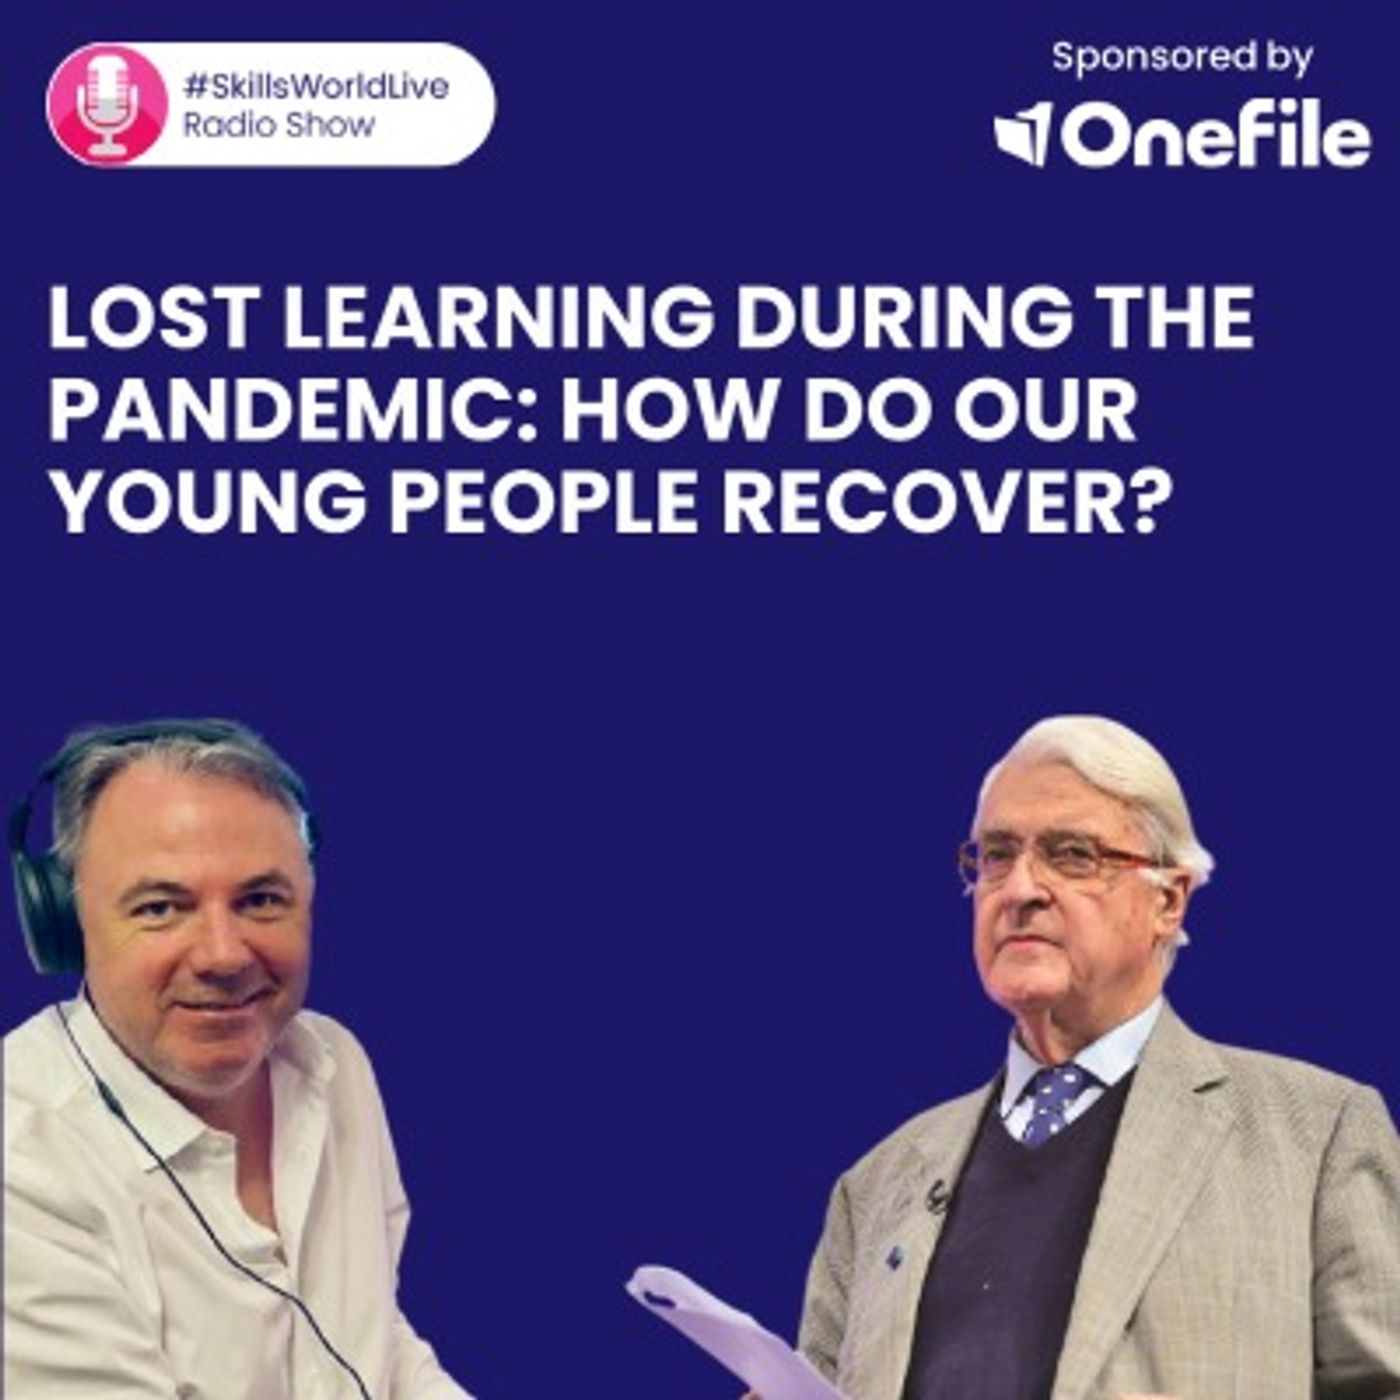 Lost learning during the pandemic: How do our young people recover? #SkillsWorldLive 3.2